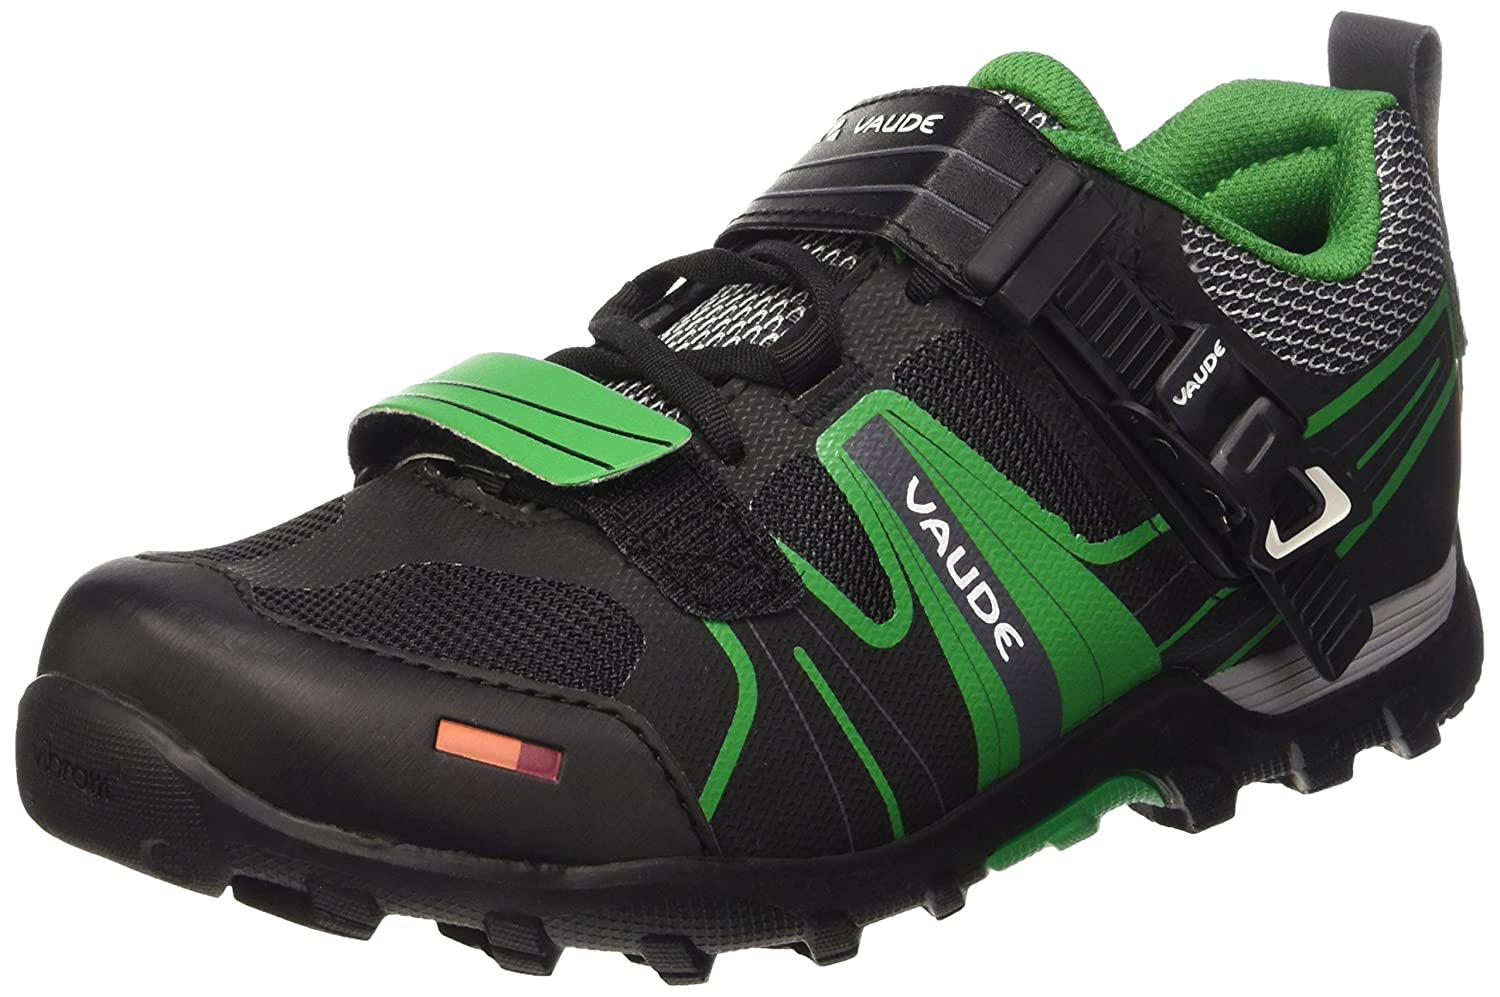 VAUDE Taron Low AM - Zapatillas de ciclismo Unisex adulto 20348